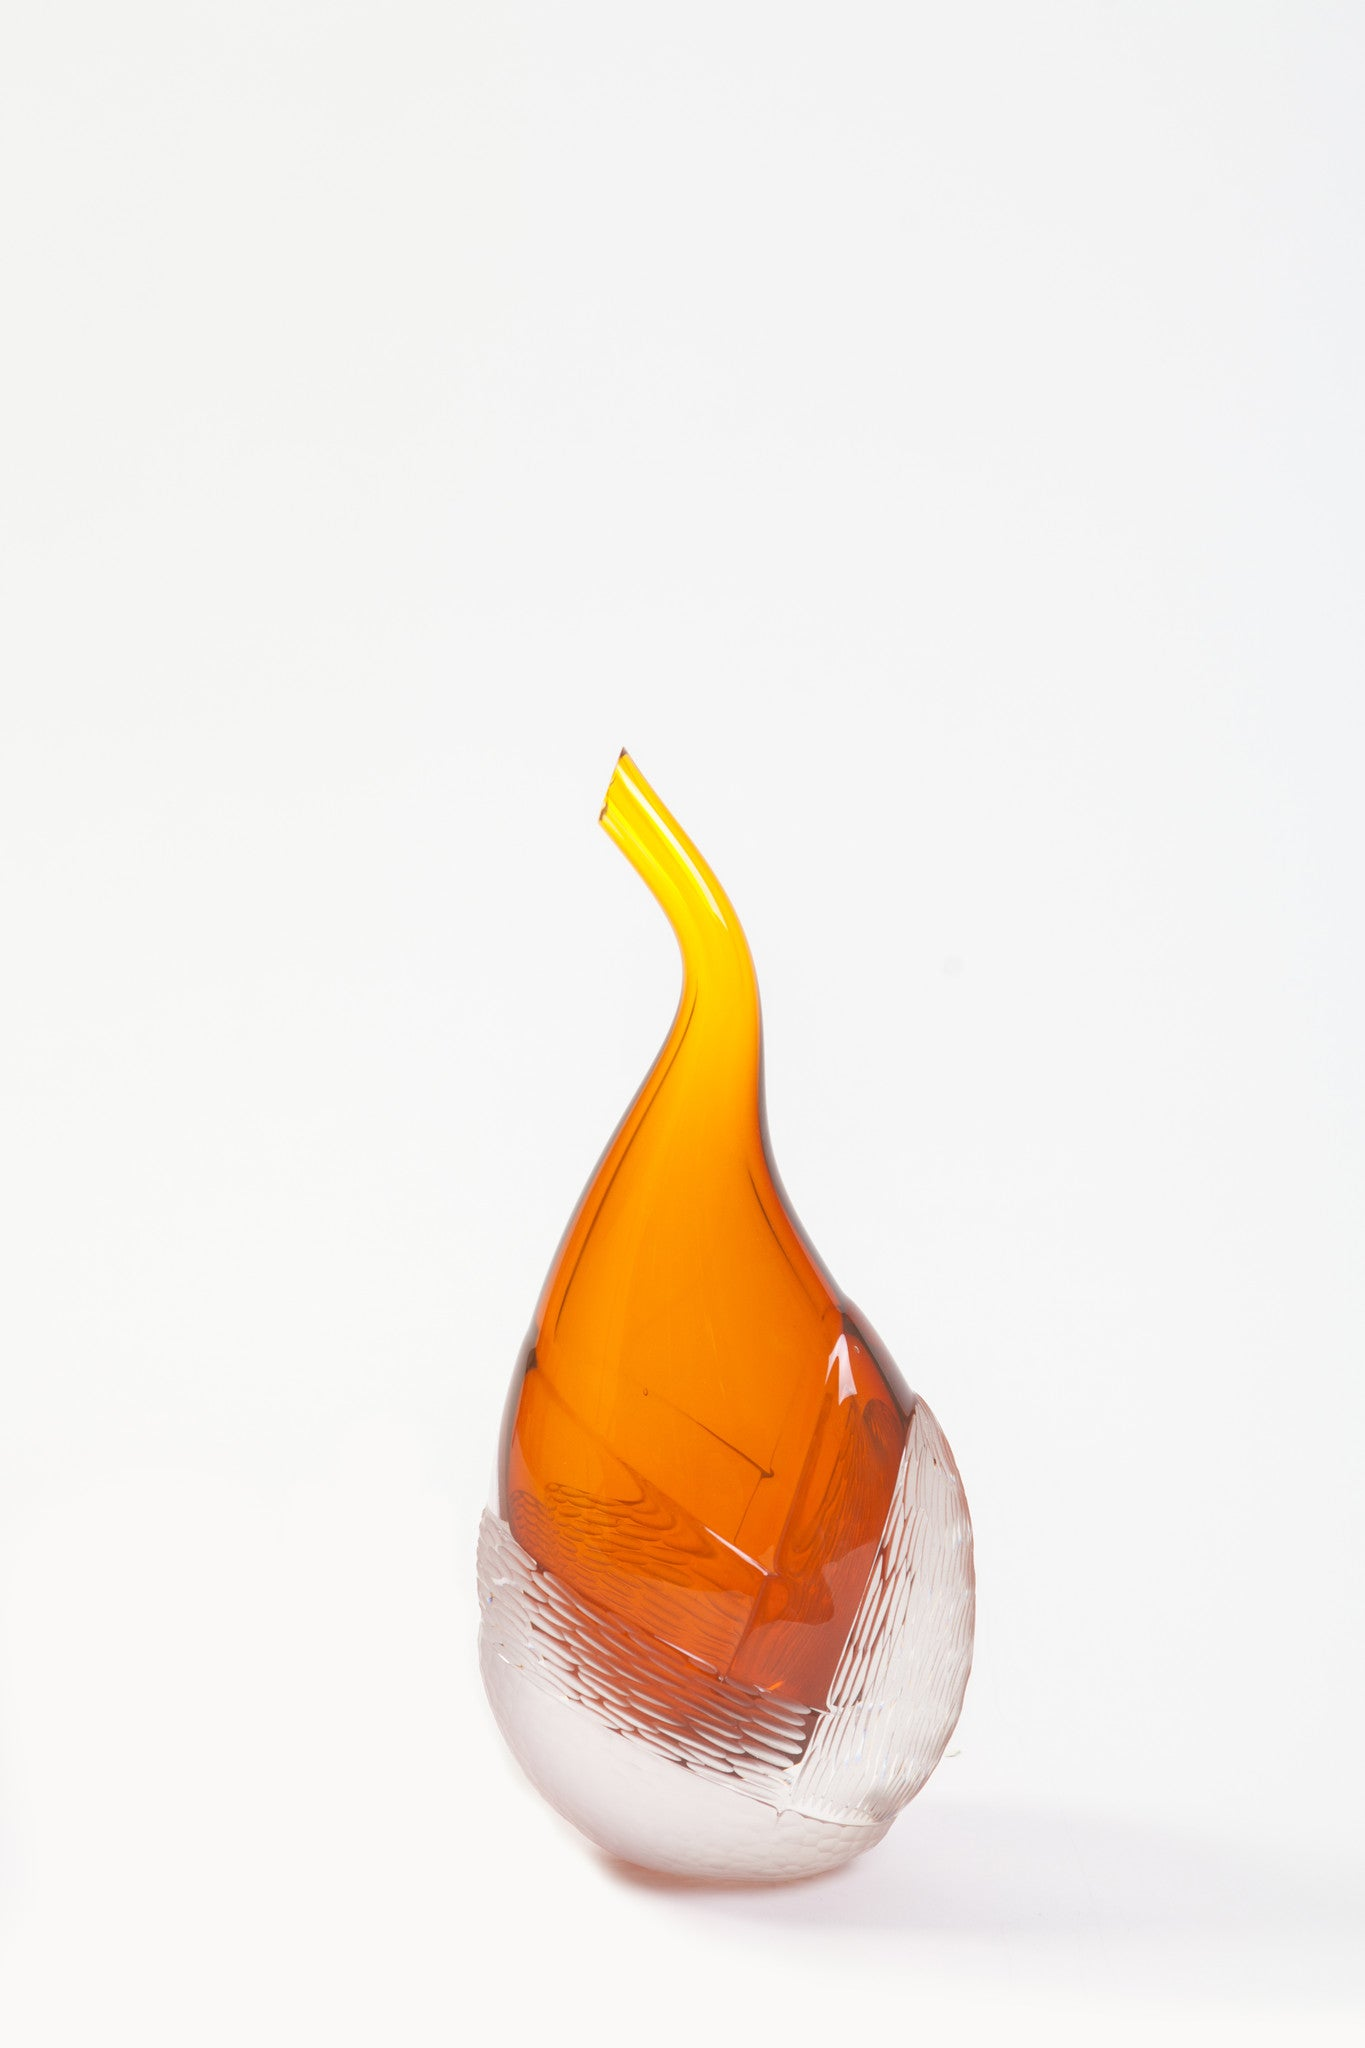 Brien Strancar Dipped and Cut Gold Wiggler Glass Sculpture (2013)